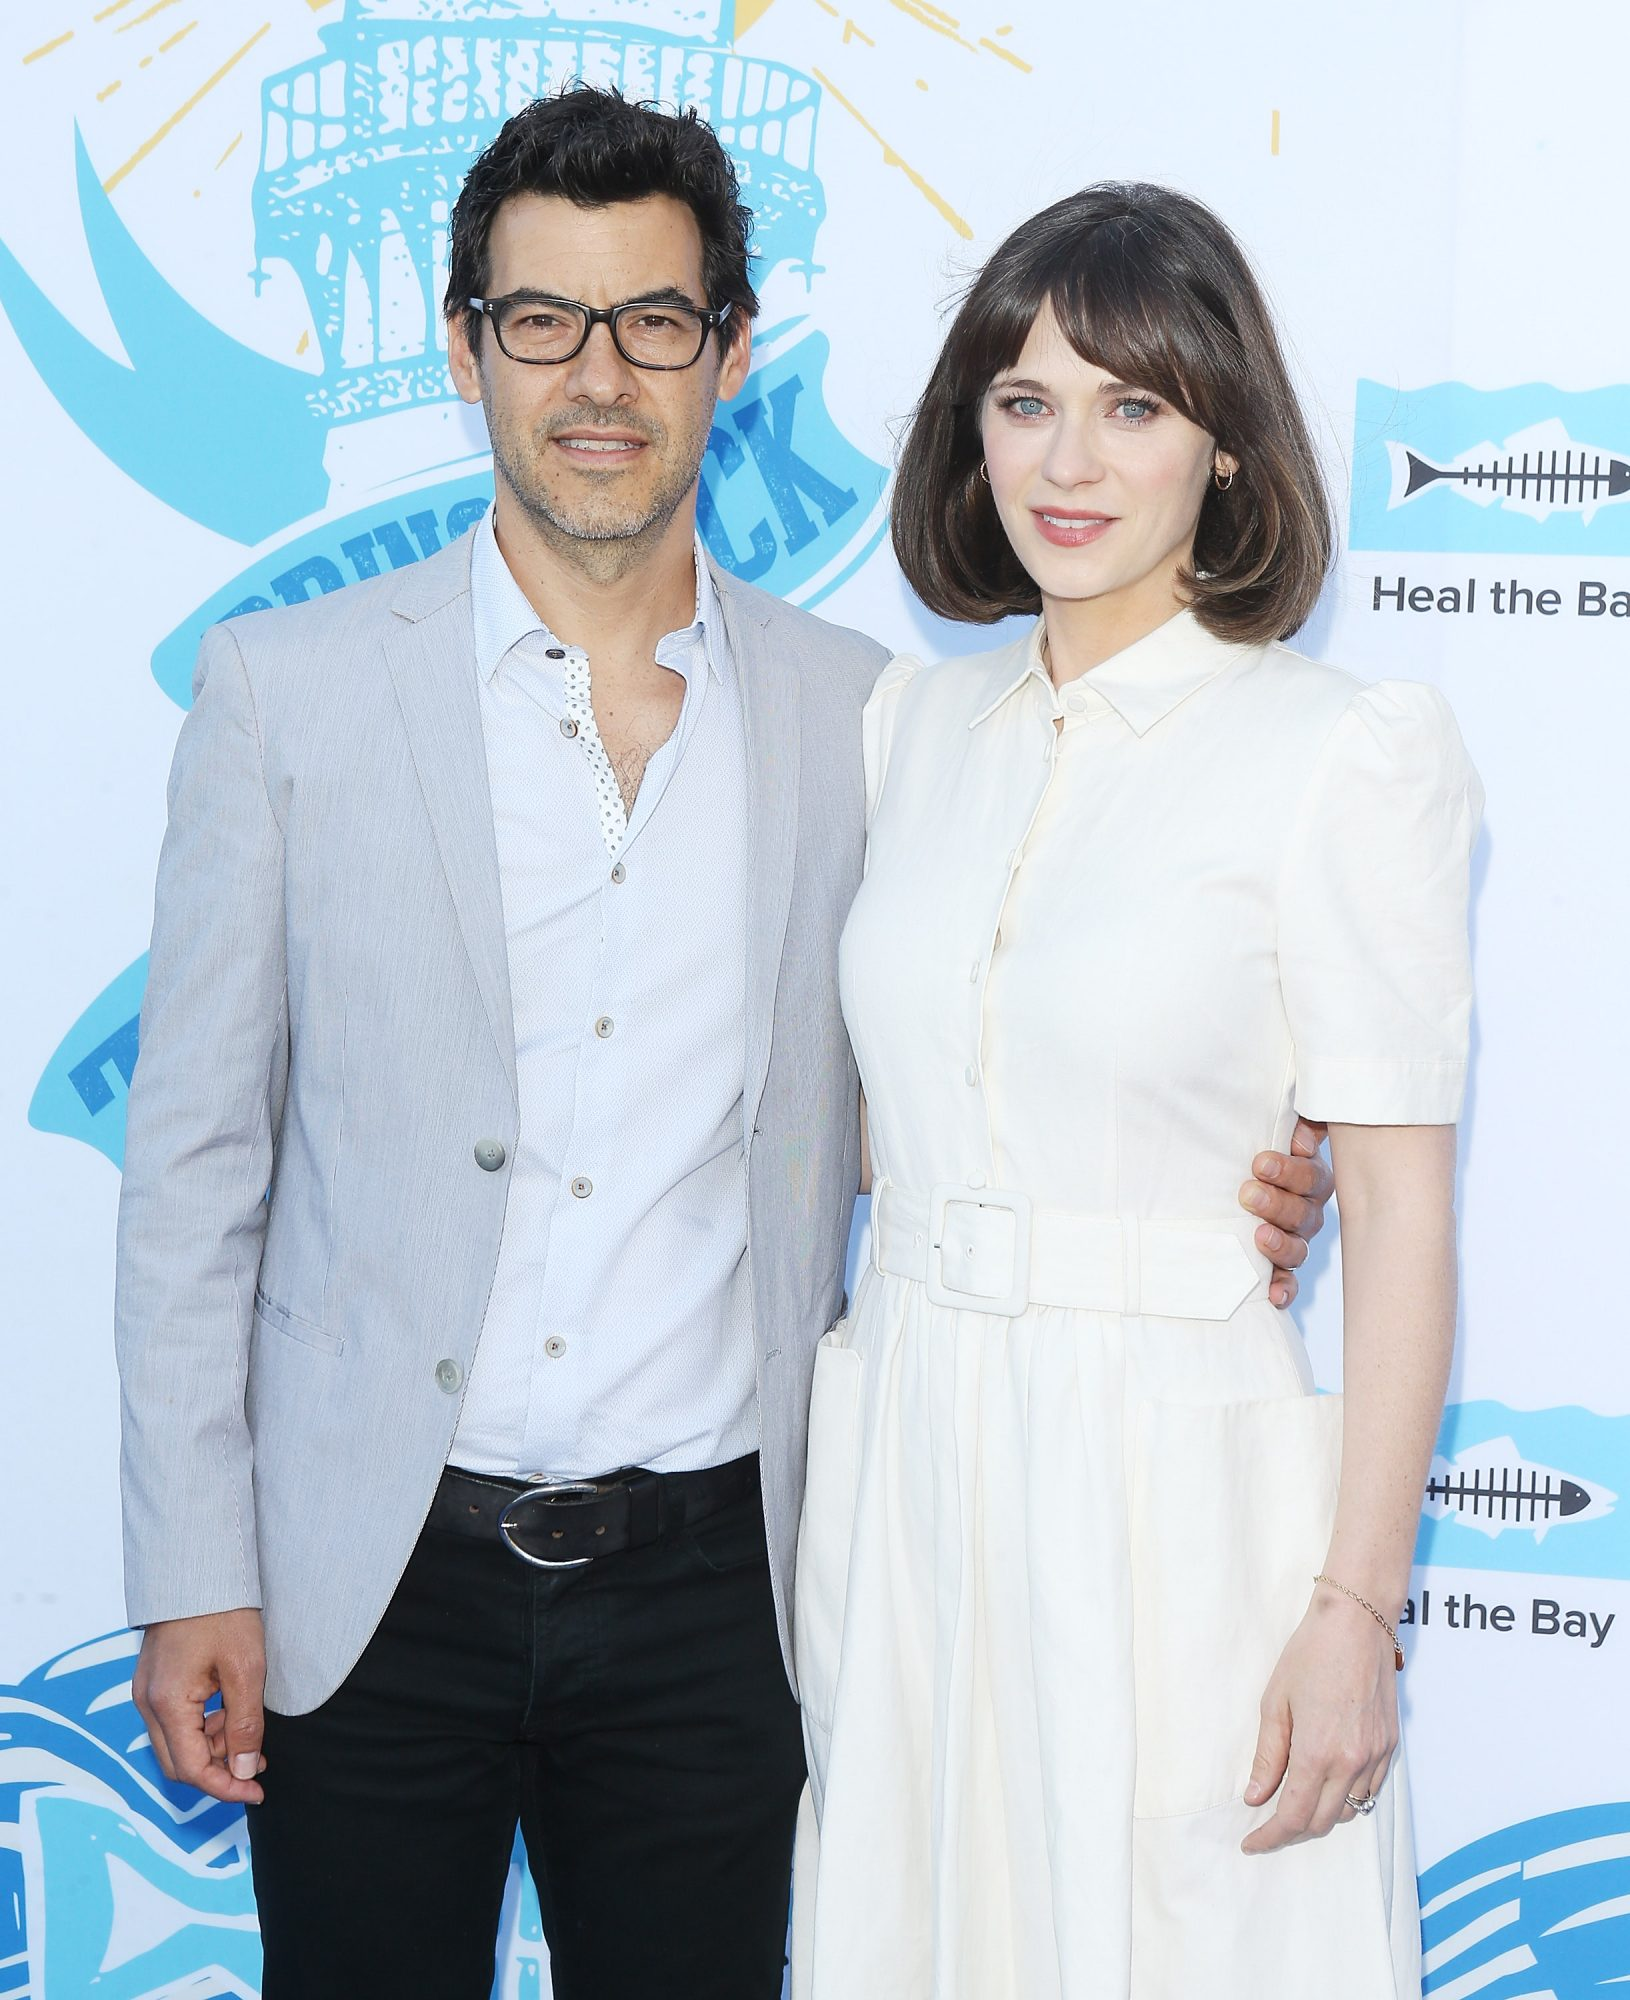 Zooey Deschanel Has Split Up with Jacob Pechenik After 4 Years of Marriage